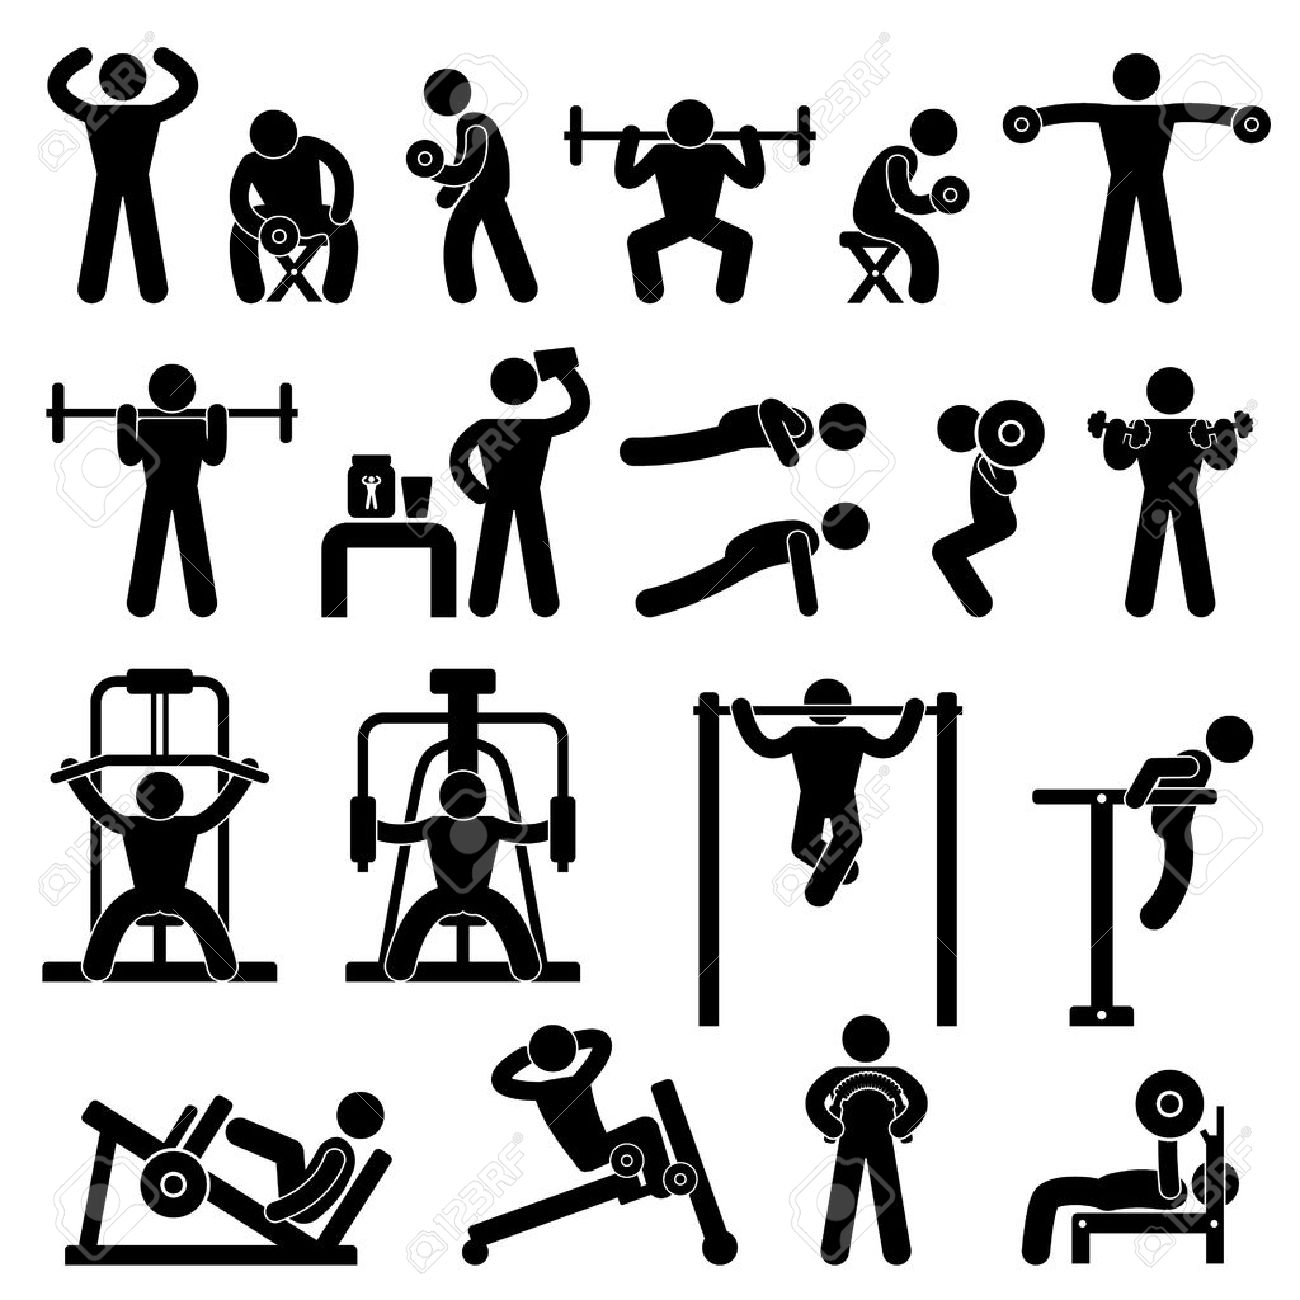 Gym Gymnasium Body Building Exercise Training Fitness Workout Stock Vector